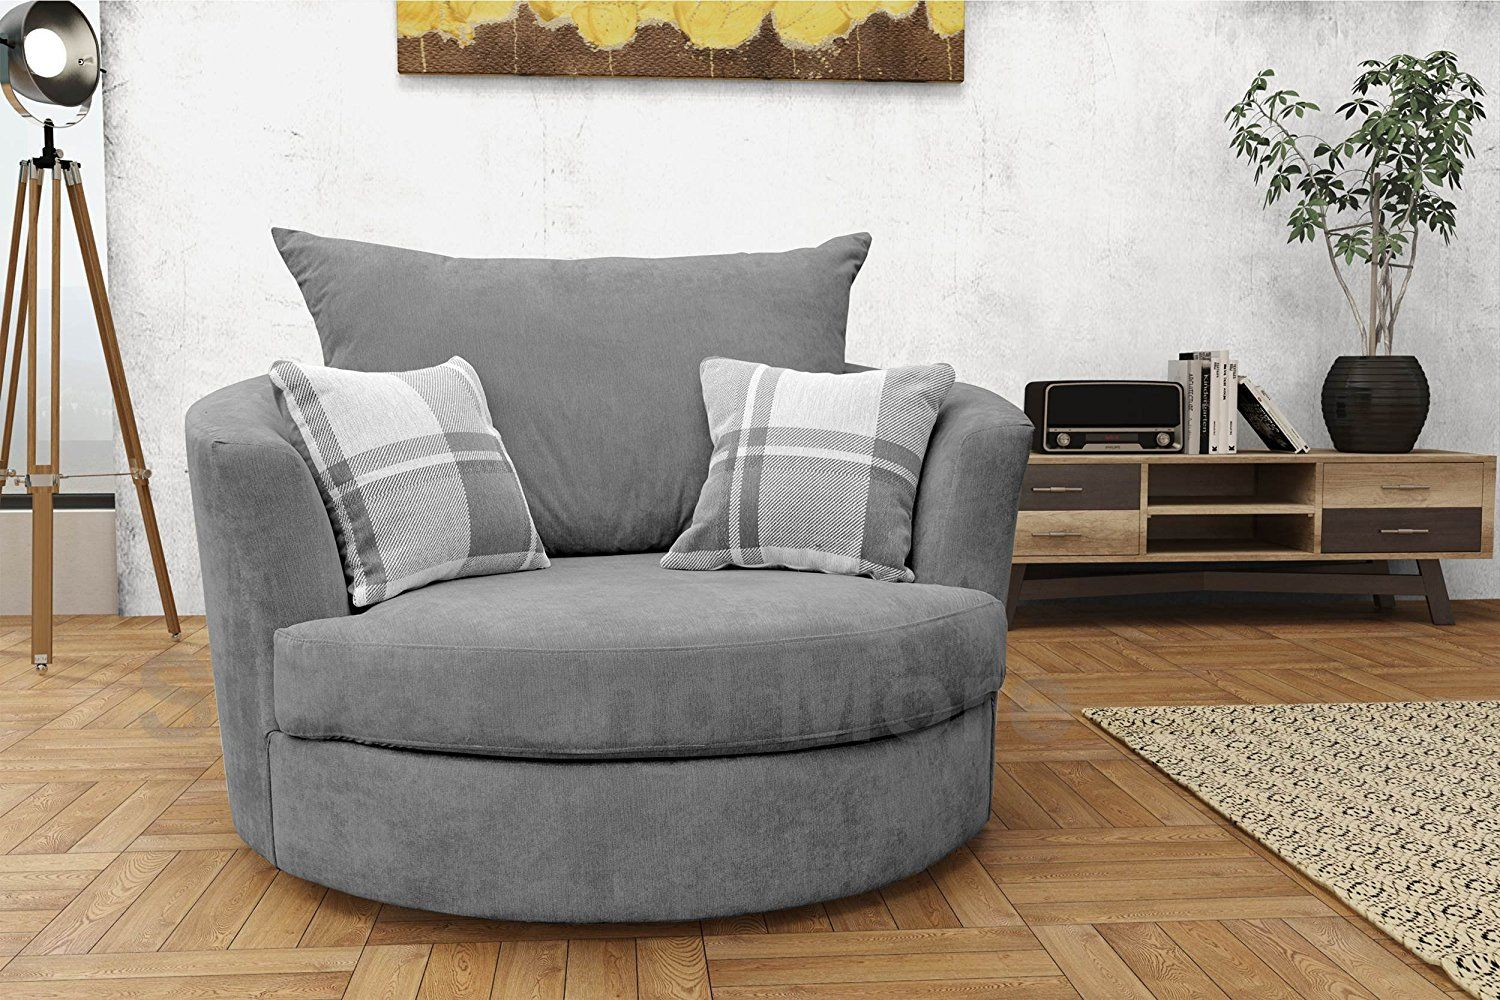 Large Swivel Round Cuddle Chair Fabric (Grey) Amazon.co